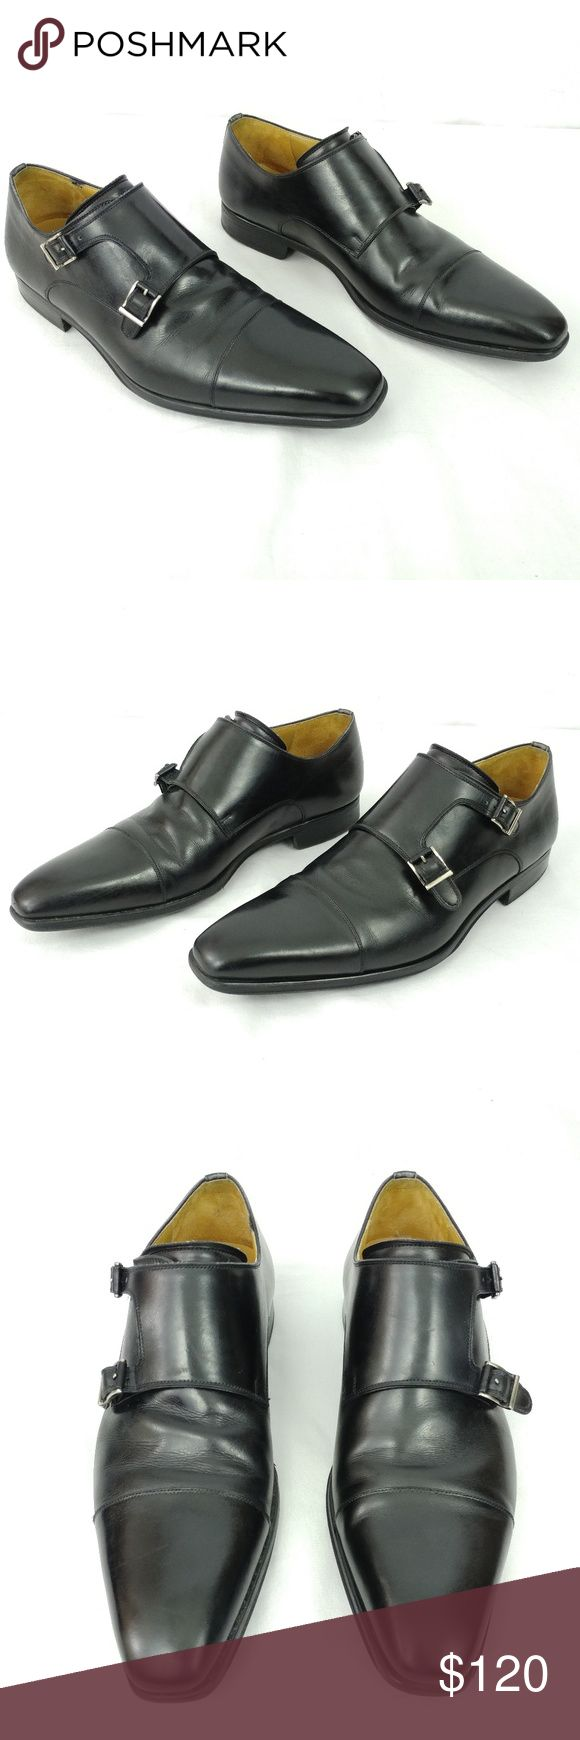 Magnanni Double Monk Strap Loafers Magnanni Black Leather Double Monk Strap Loaf...